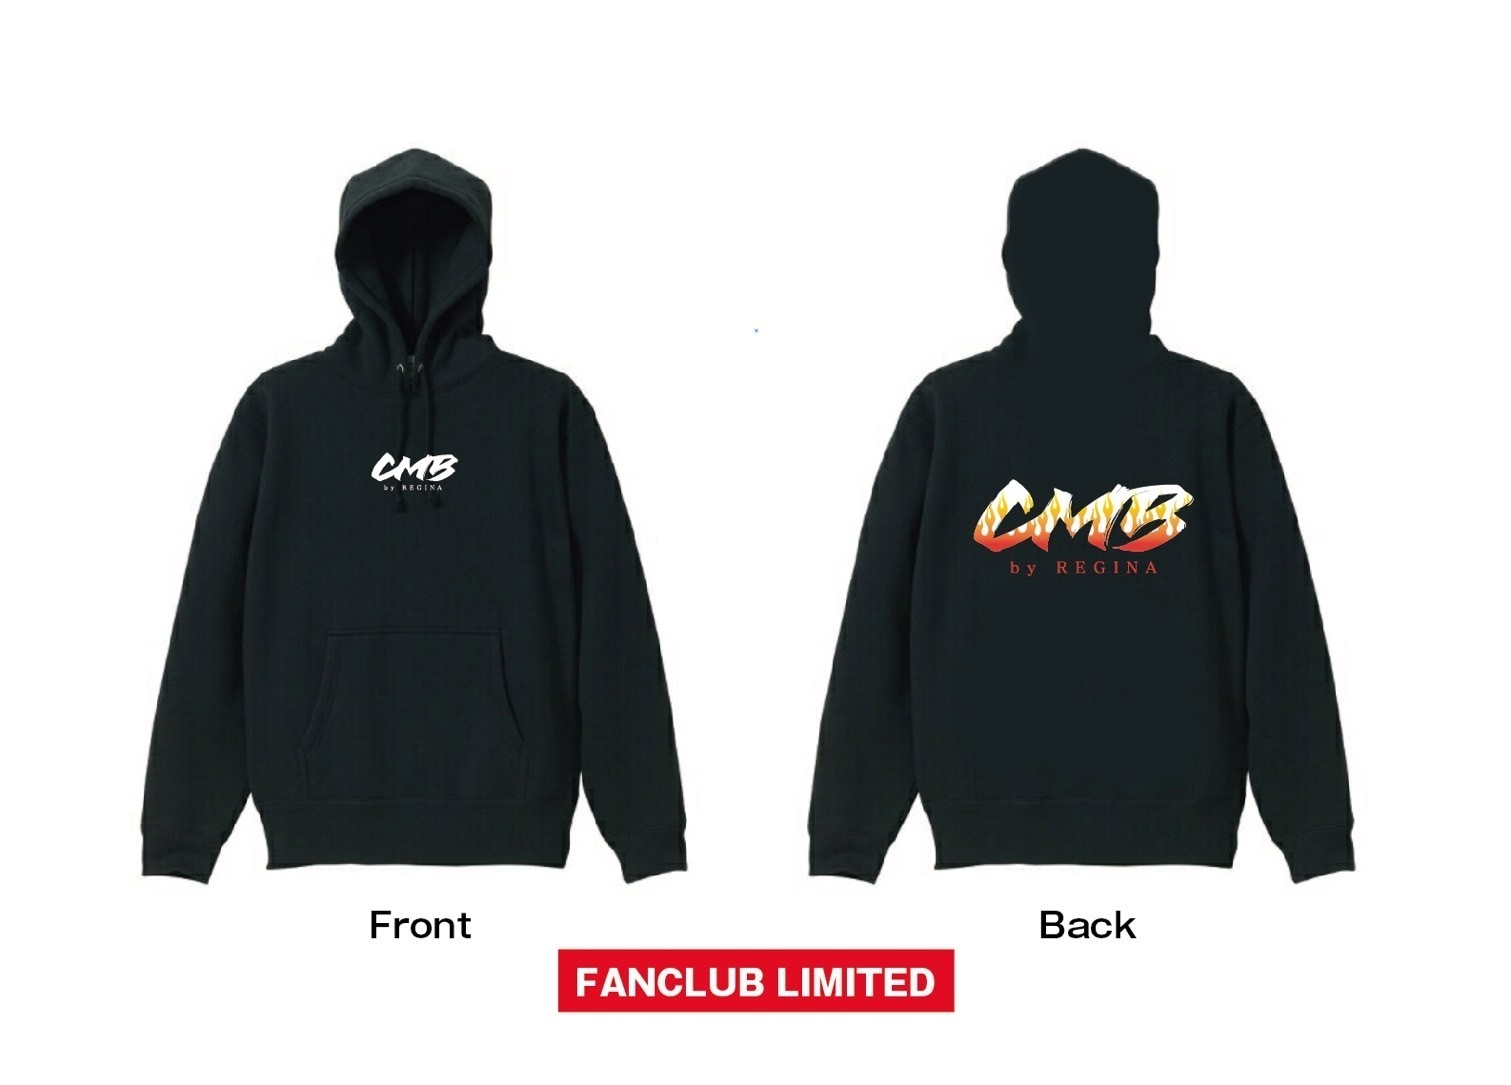 CMB by REGINA FAMILIA LIMITED HOODY/ FIRE